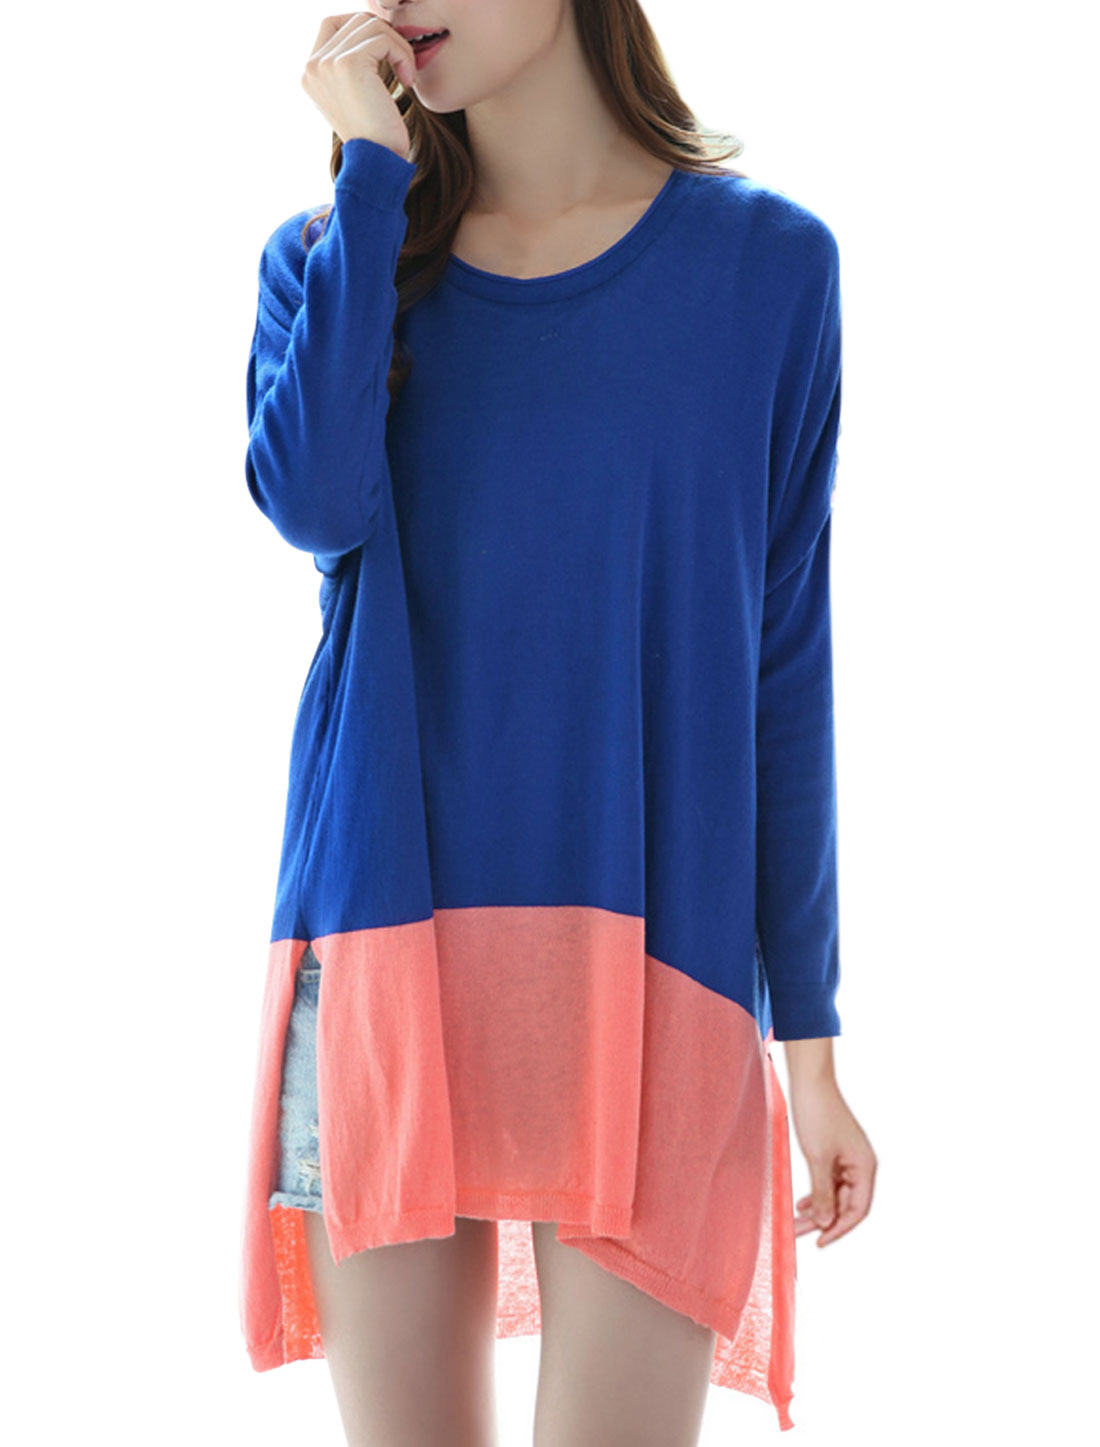 Women Round Neck Pullover Color Block Knitwear Royal Blue Pink M